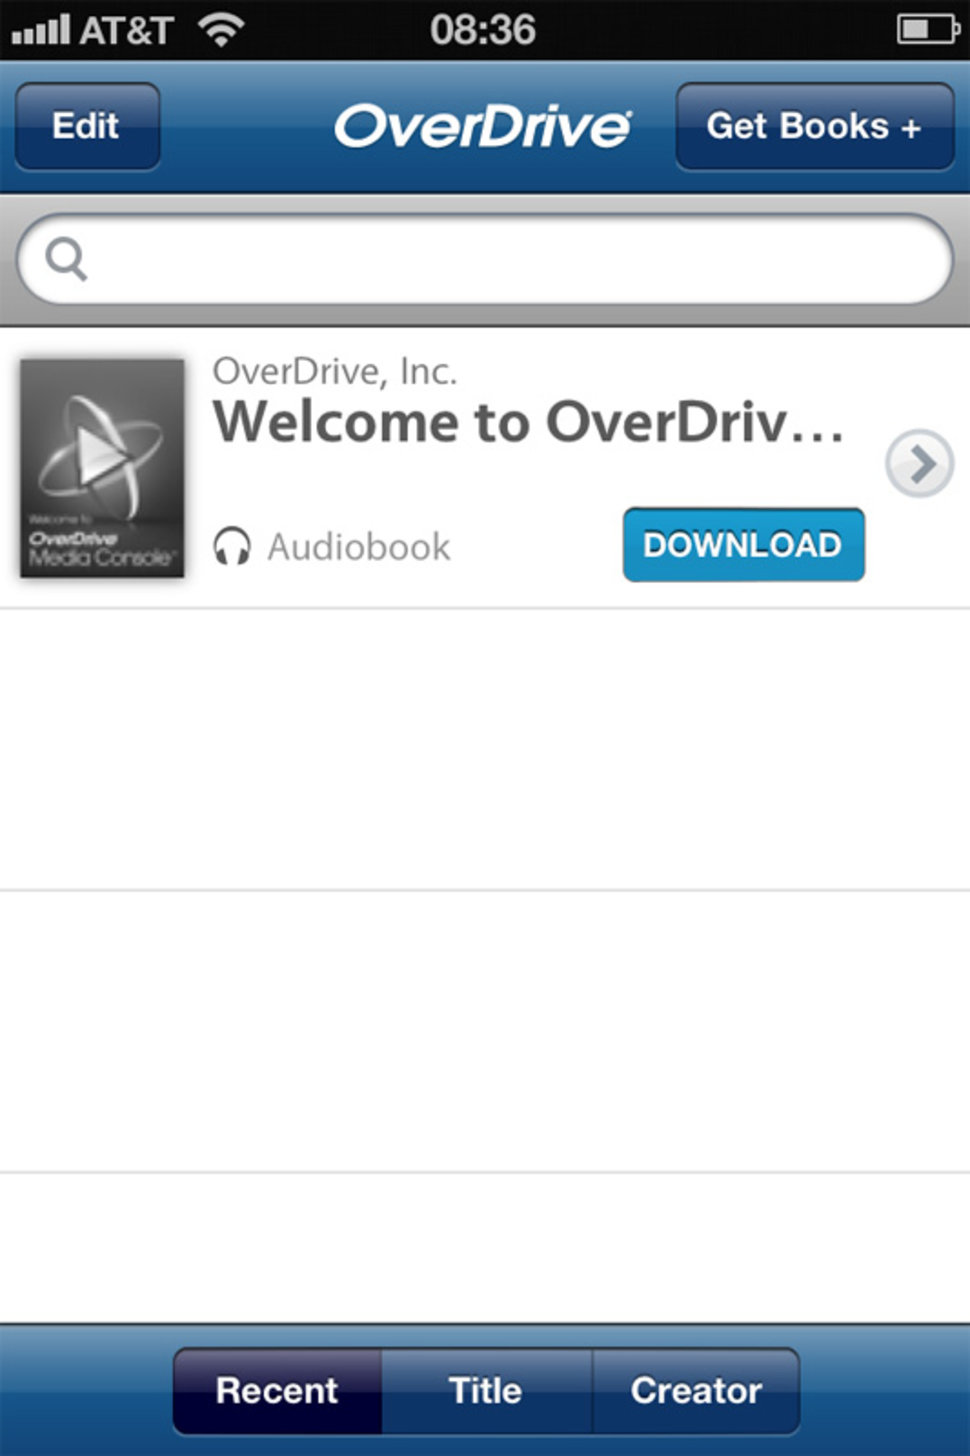 How To Overdrive Epub Ebooks To Your Ipad